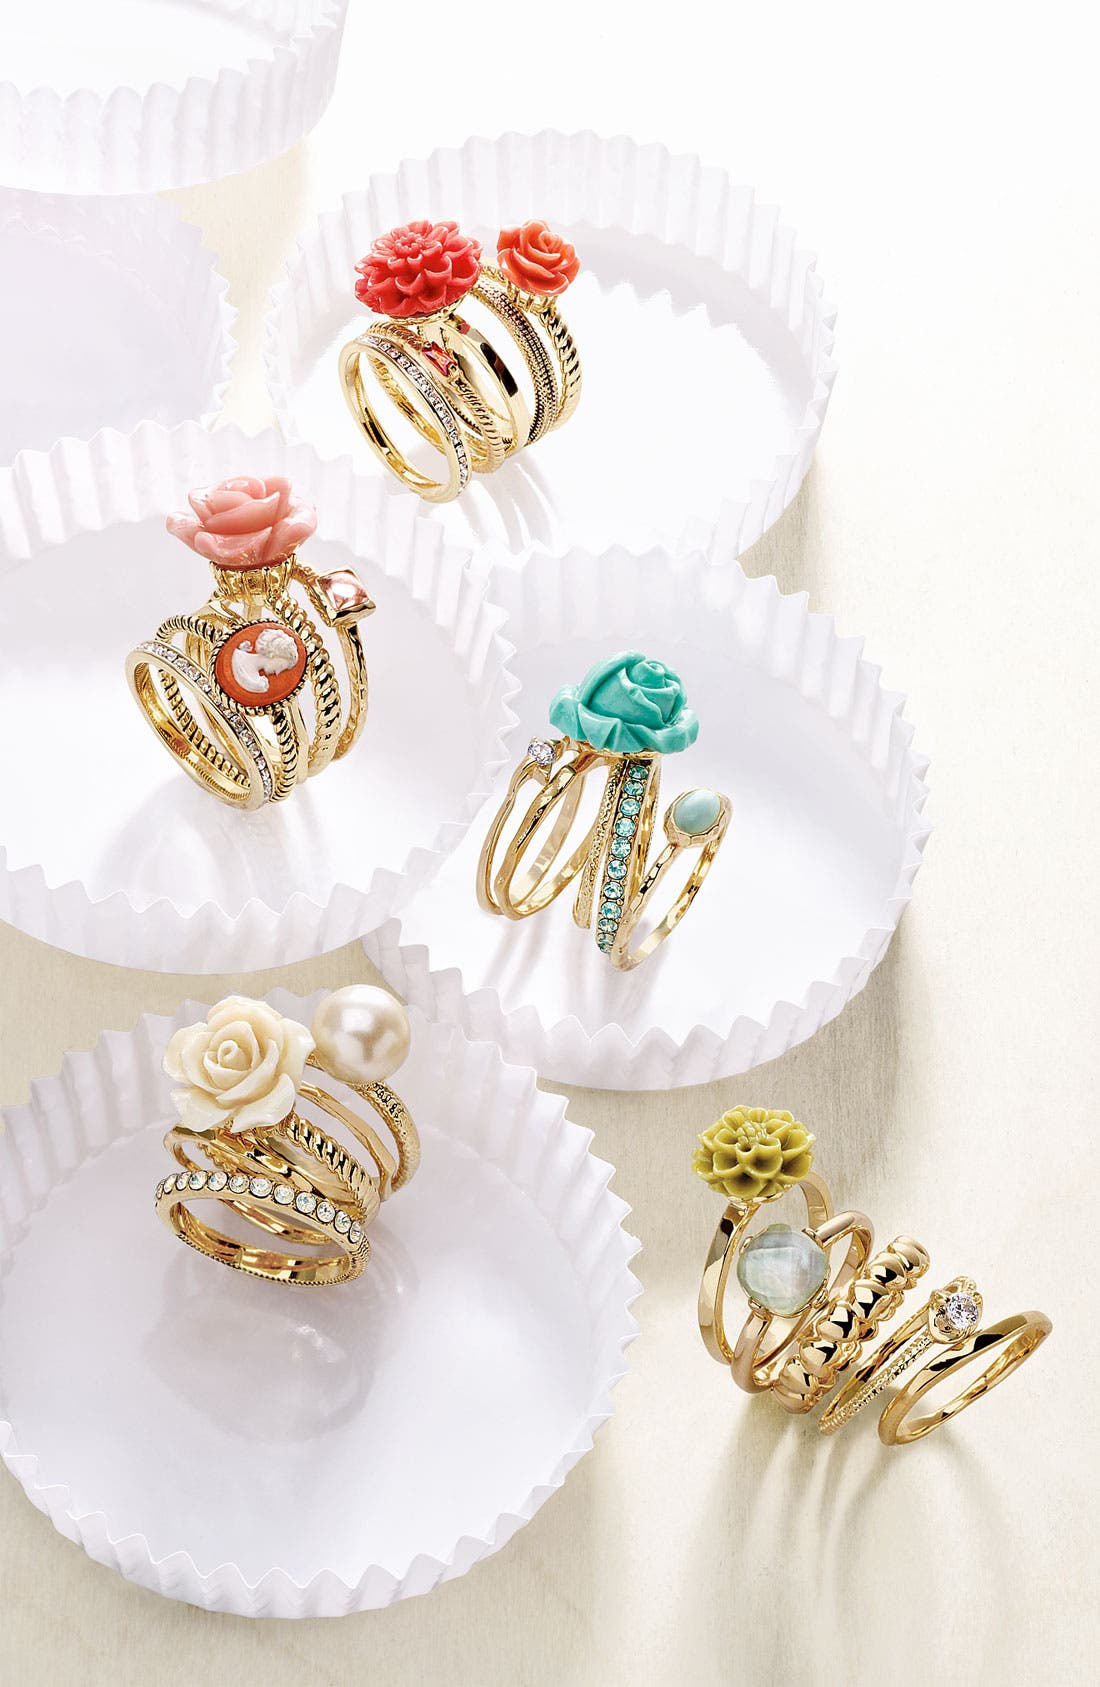 Alternate Image 2  - Ariella Collection Floral & Cameo Stack Rings (Set of 5) (Nordstrom Exclusive)